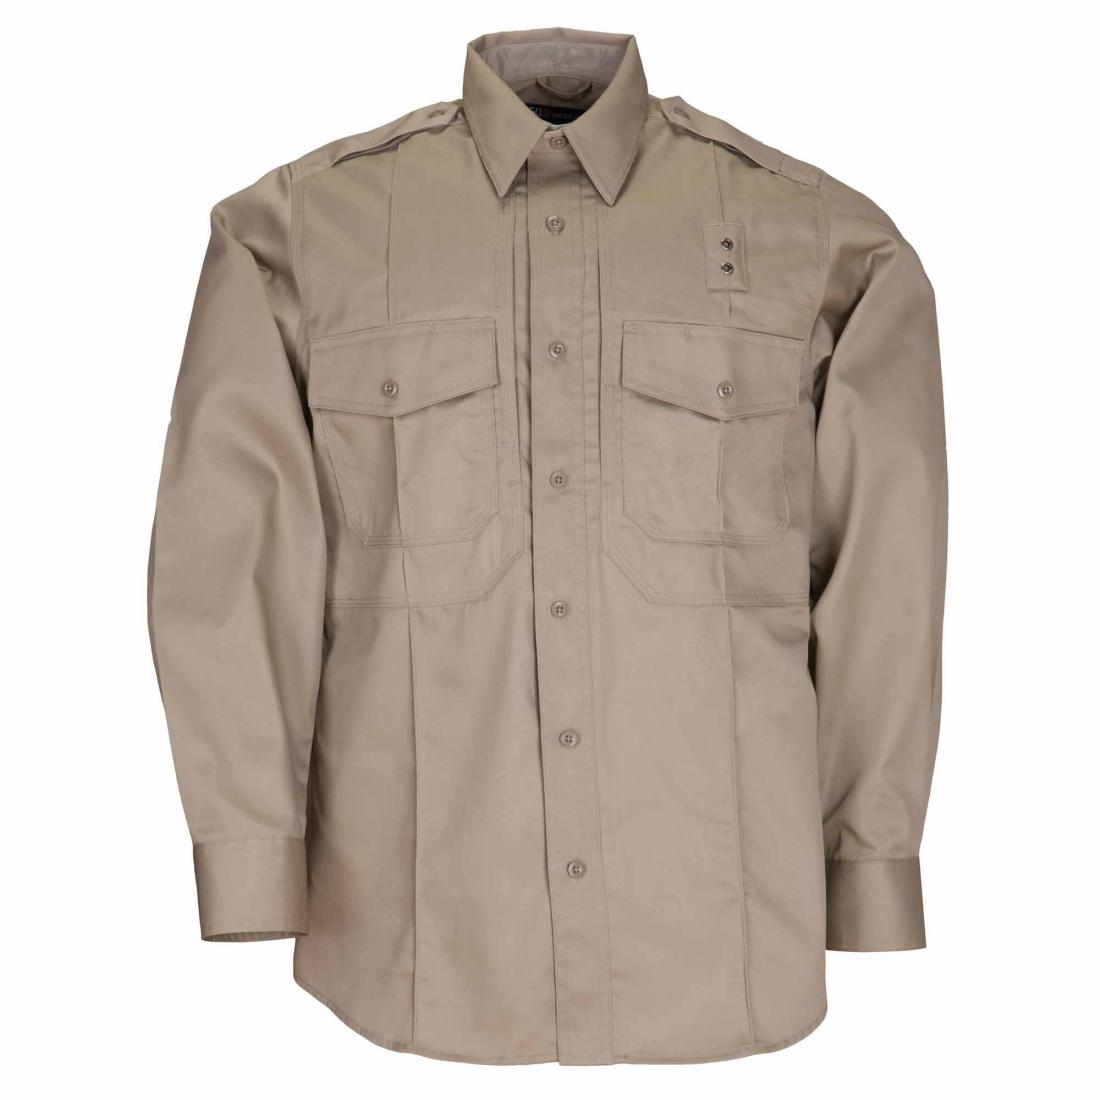 5.11 Tactical 72345 Men Twill PDU Class- B Long Sleeve Shirt Silver Tan